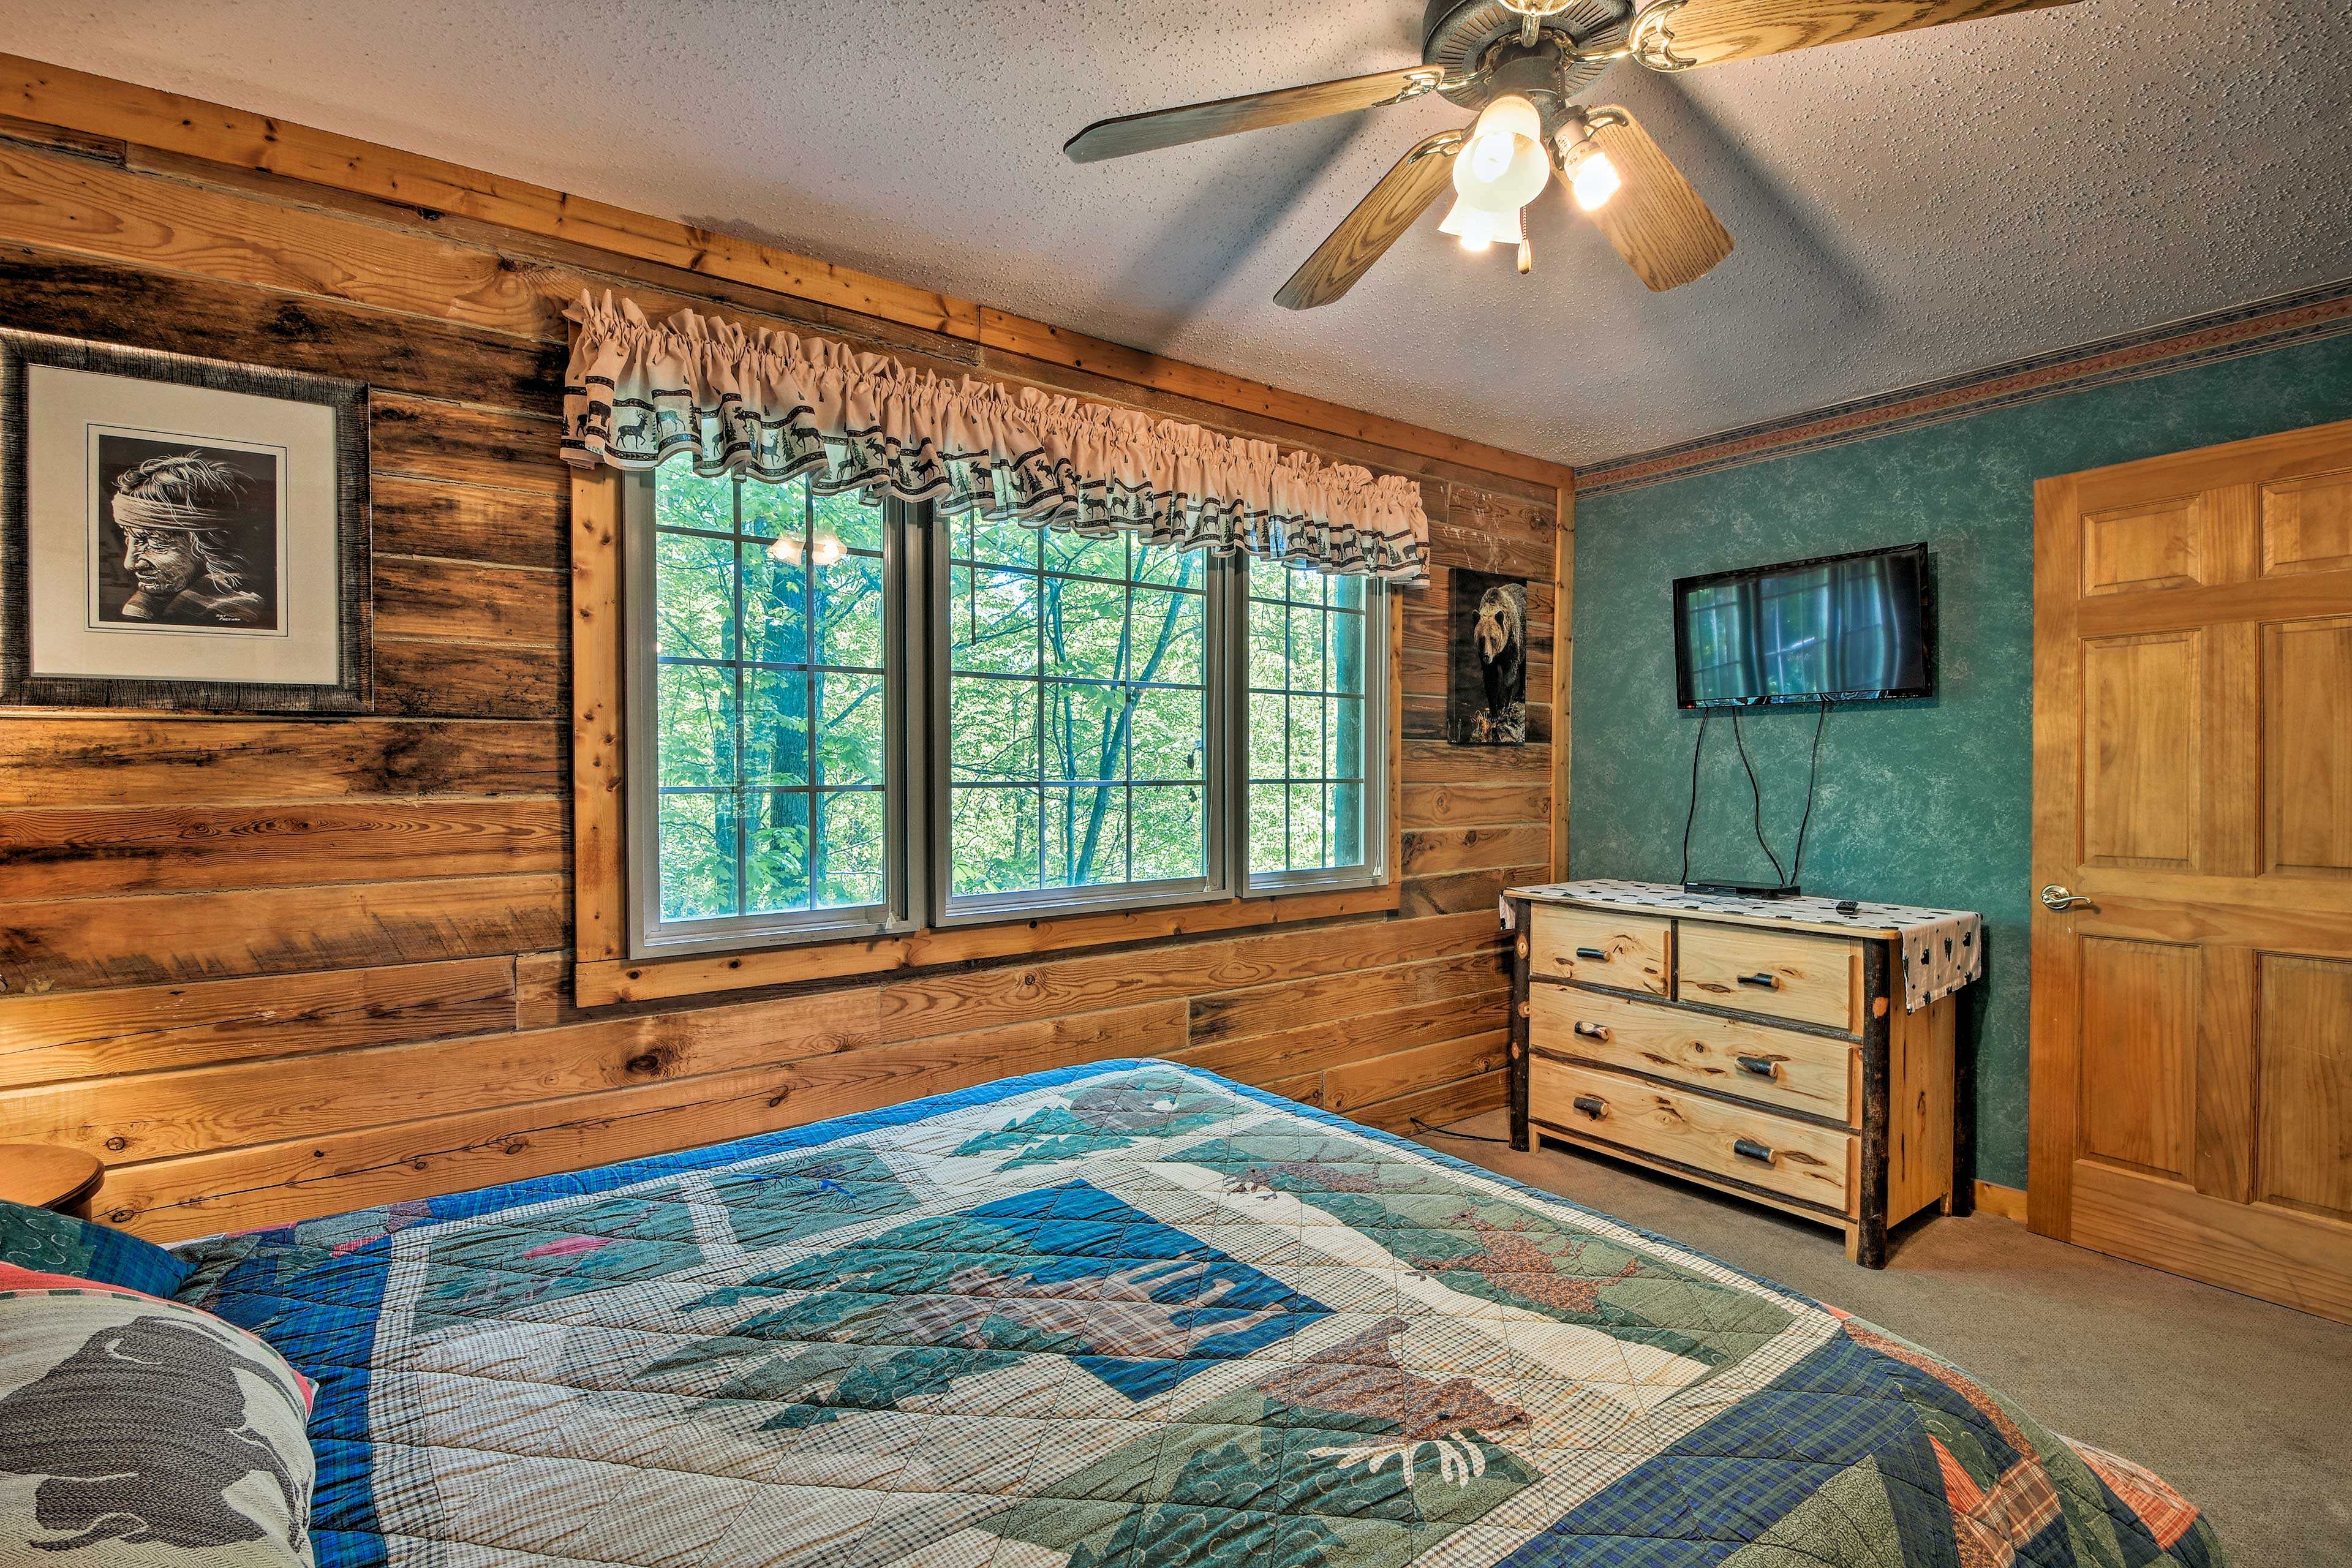 This bedroom also features amenities like a flat-screen TV and dresser.